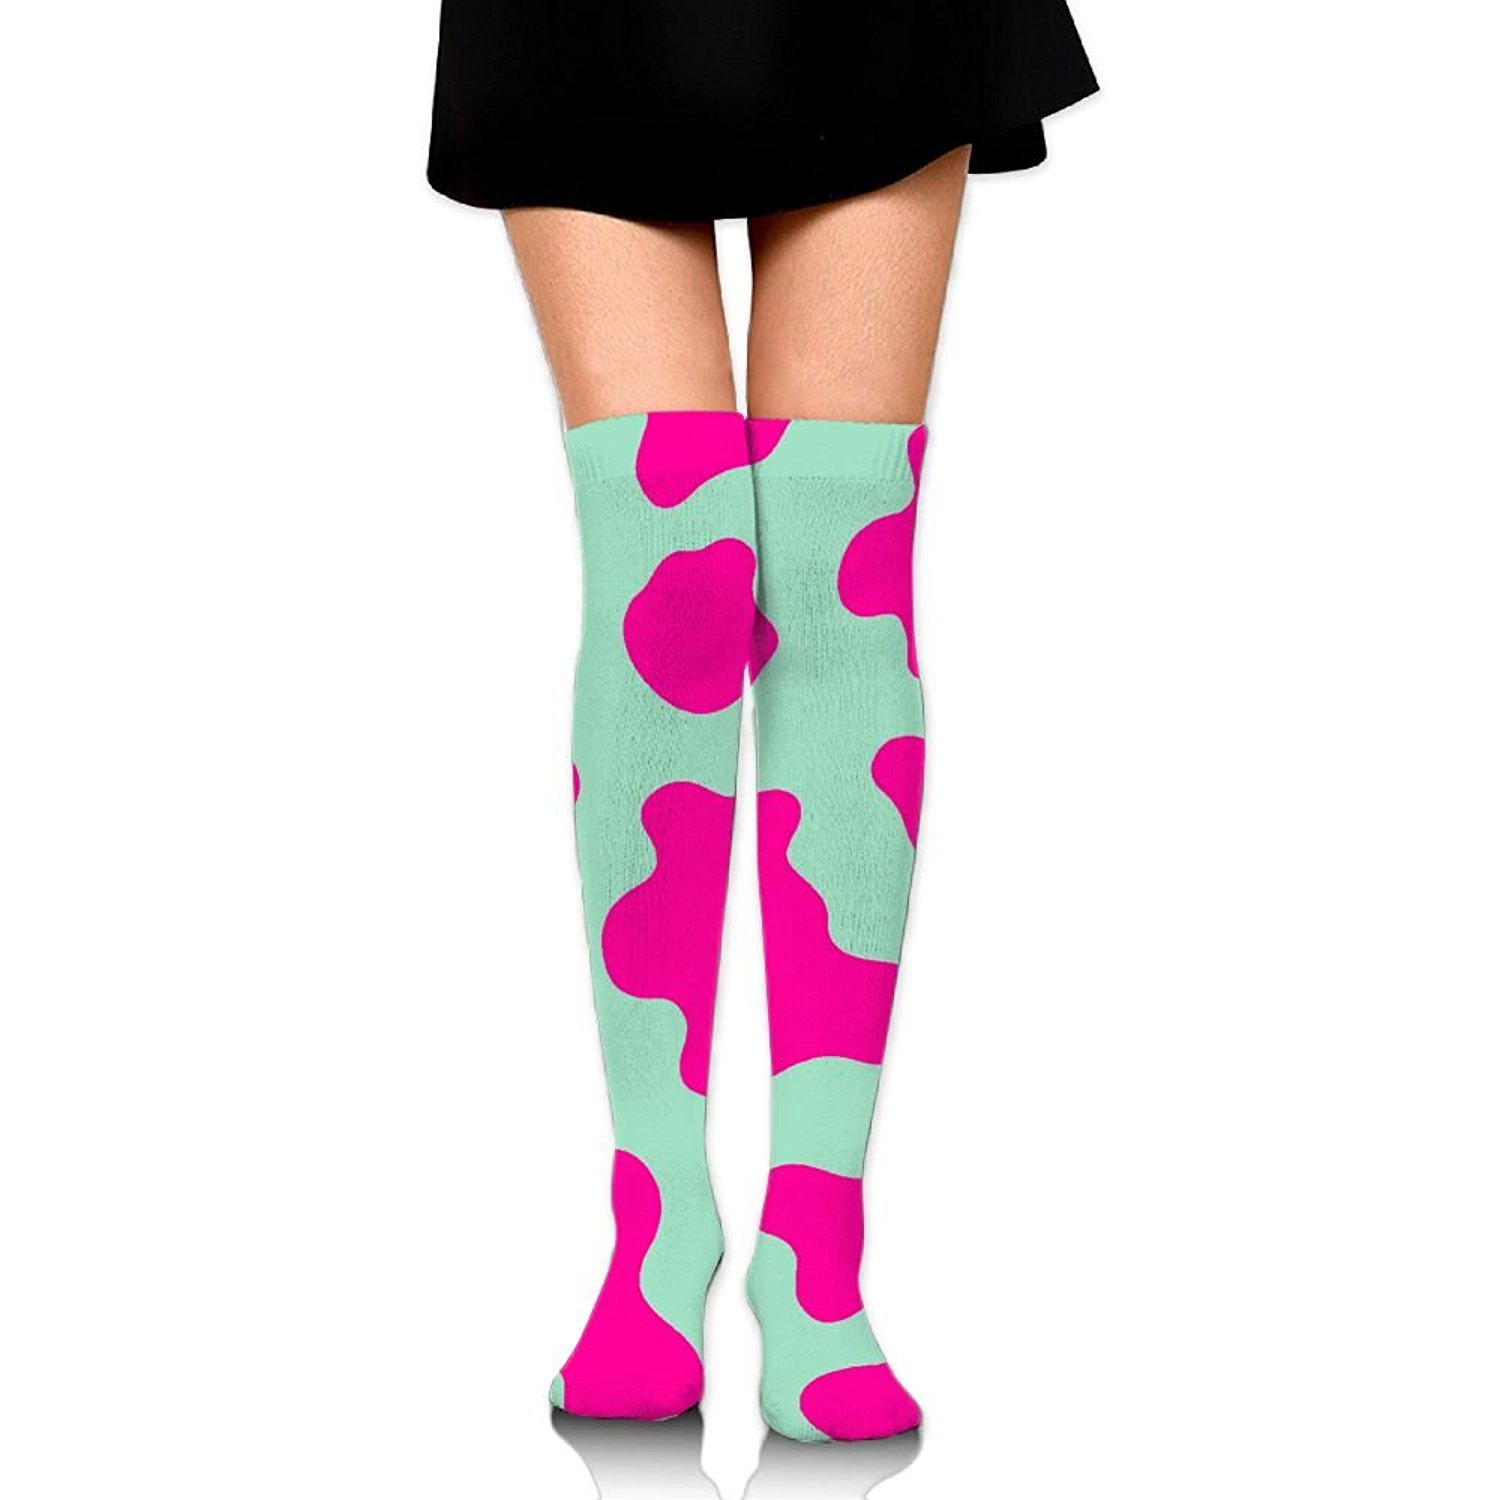 4a4a9bec3 Get Quotations · Lcswe Cow Pattern Womens Polyester Over The Knee Socks  Athletic Knee Highfashionsocks Personalizedthigh High Wamers Socks